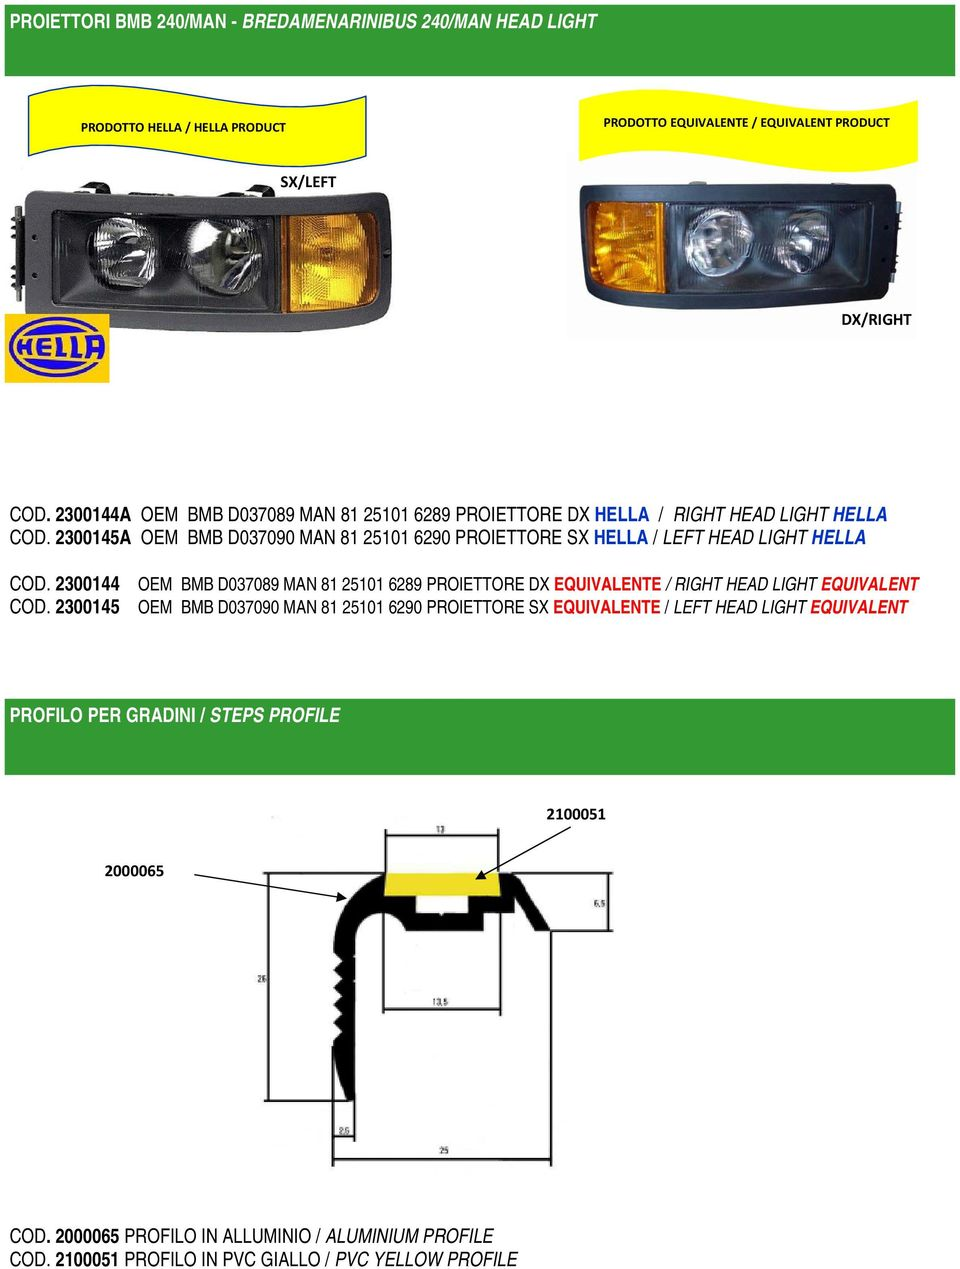 2300145A OEM BMB D037090 MAN 81 25101 6290 PROIETTORE SX HELLA / LEFT HEAD LIGHT HELLA COD. 2300144 COD.